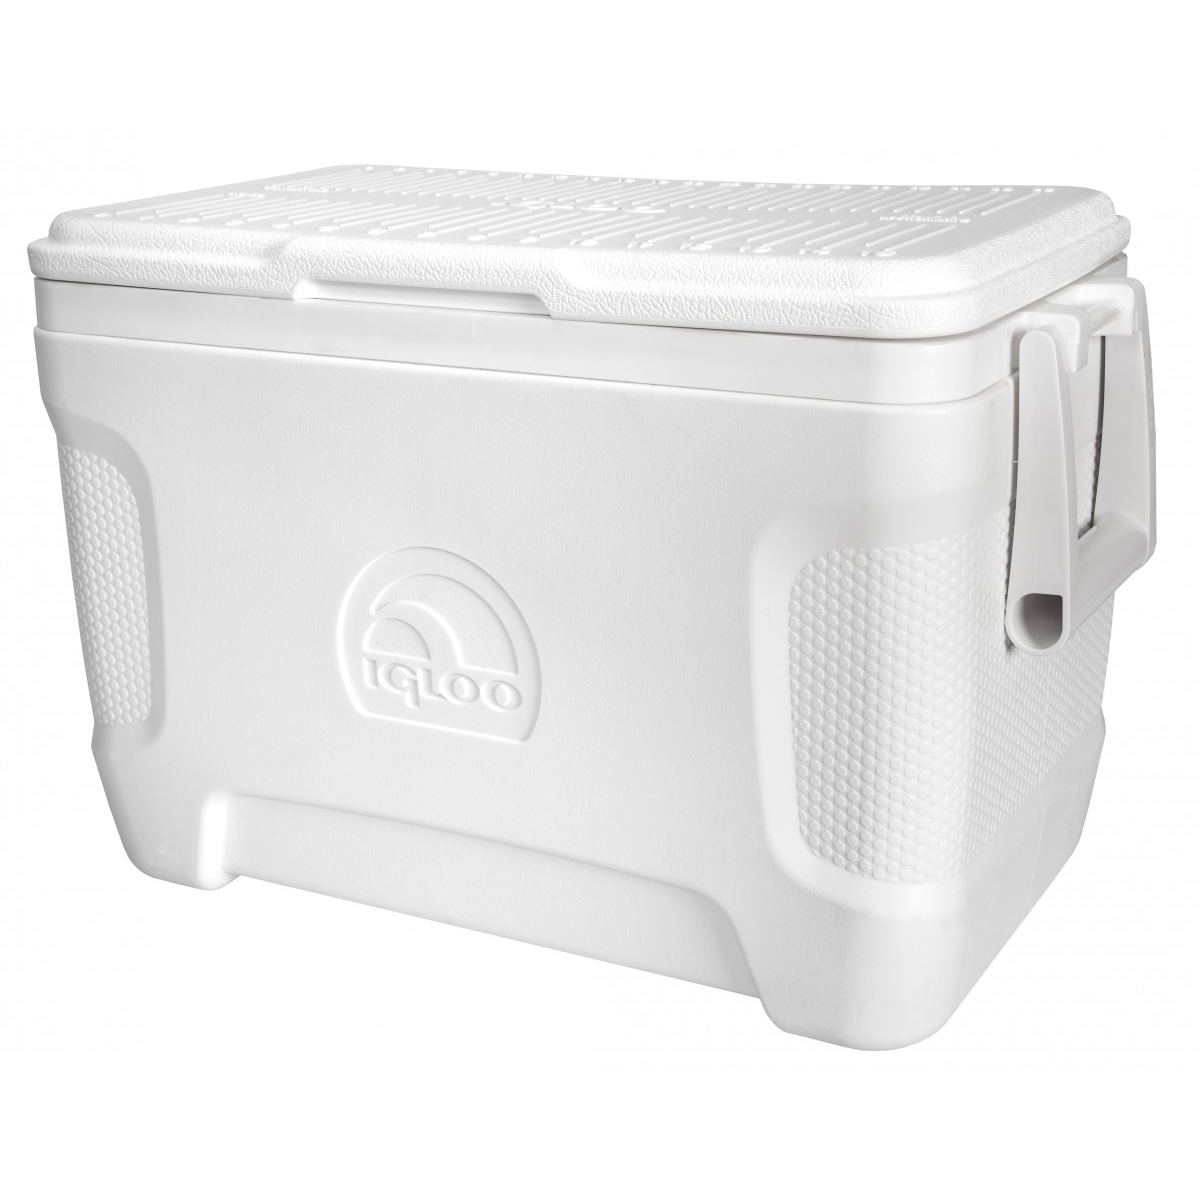 IGLOO PORTABLE ICE CHESTS